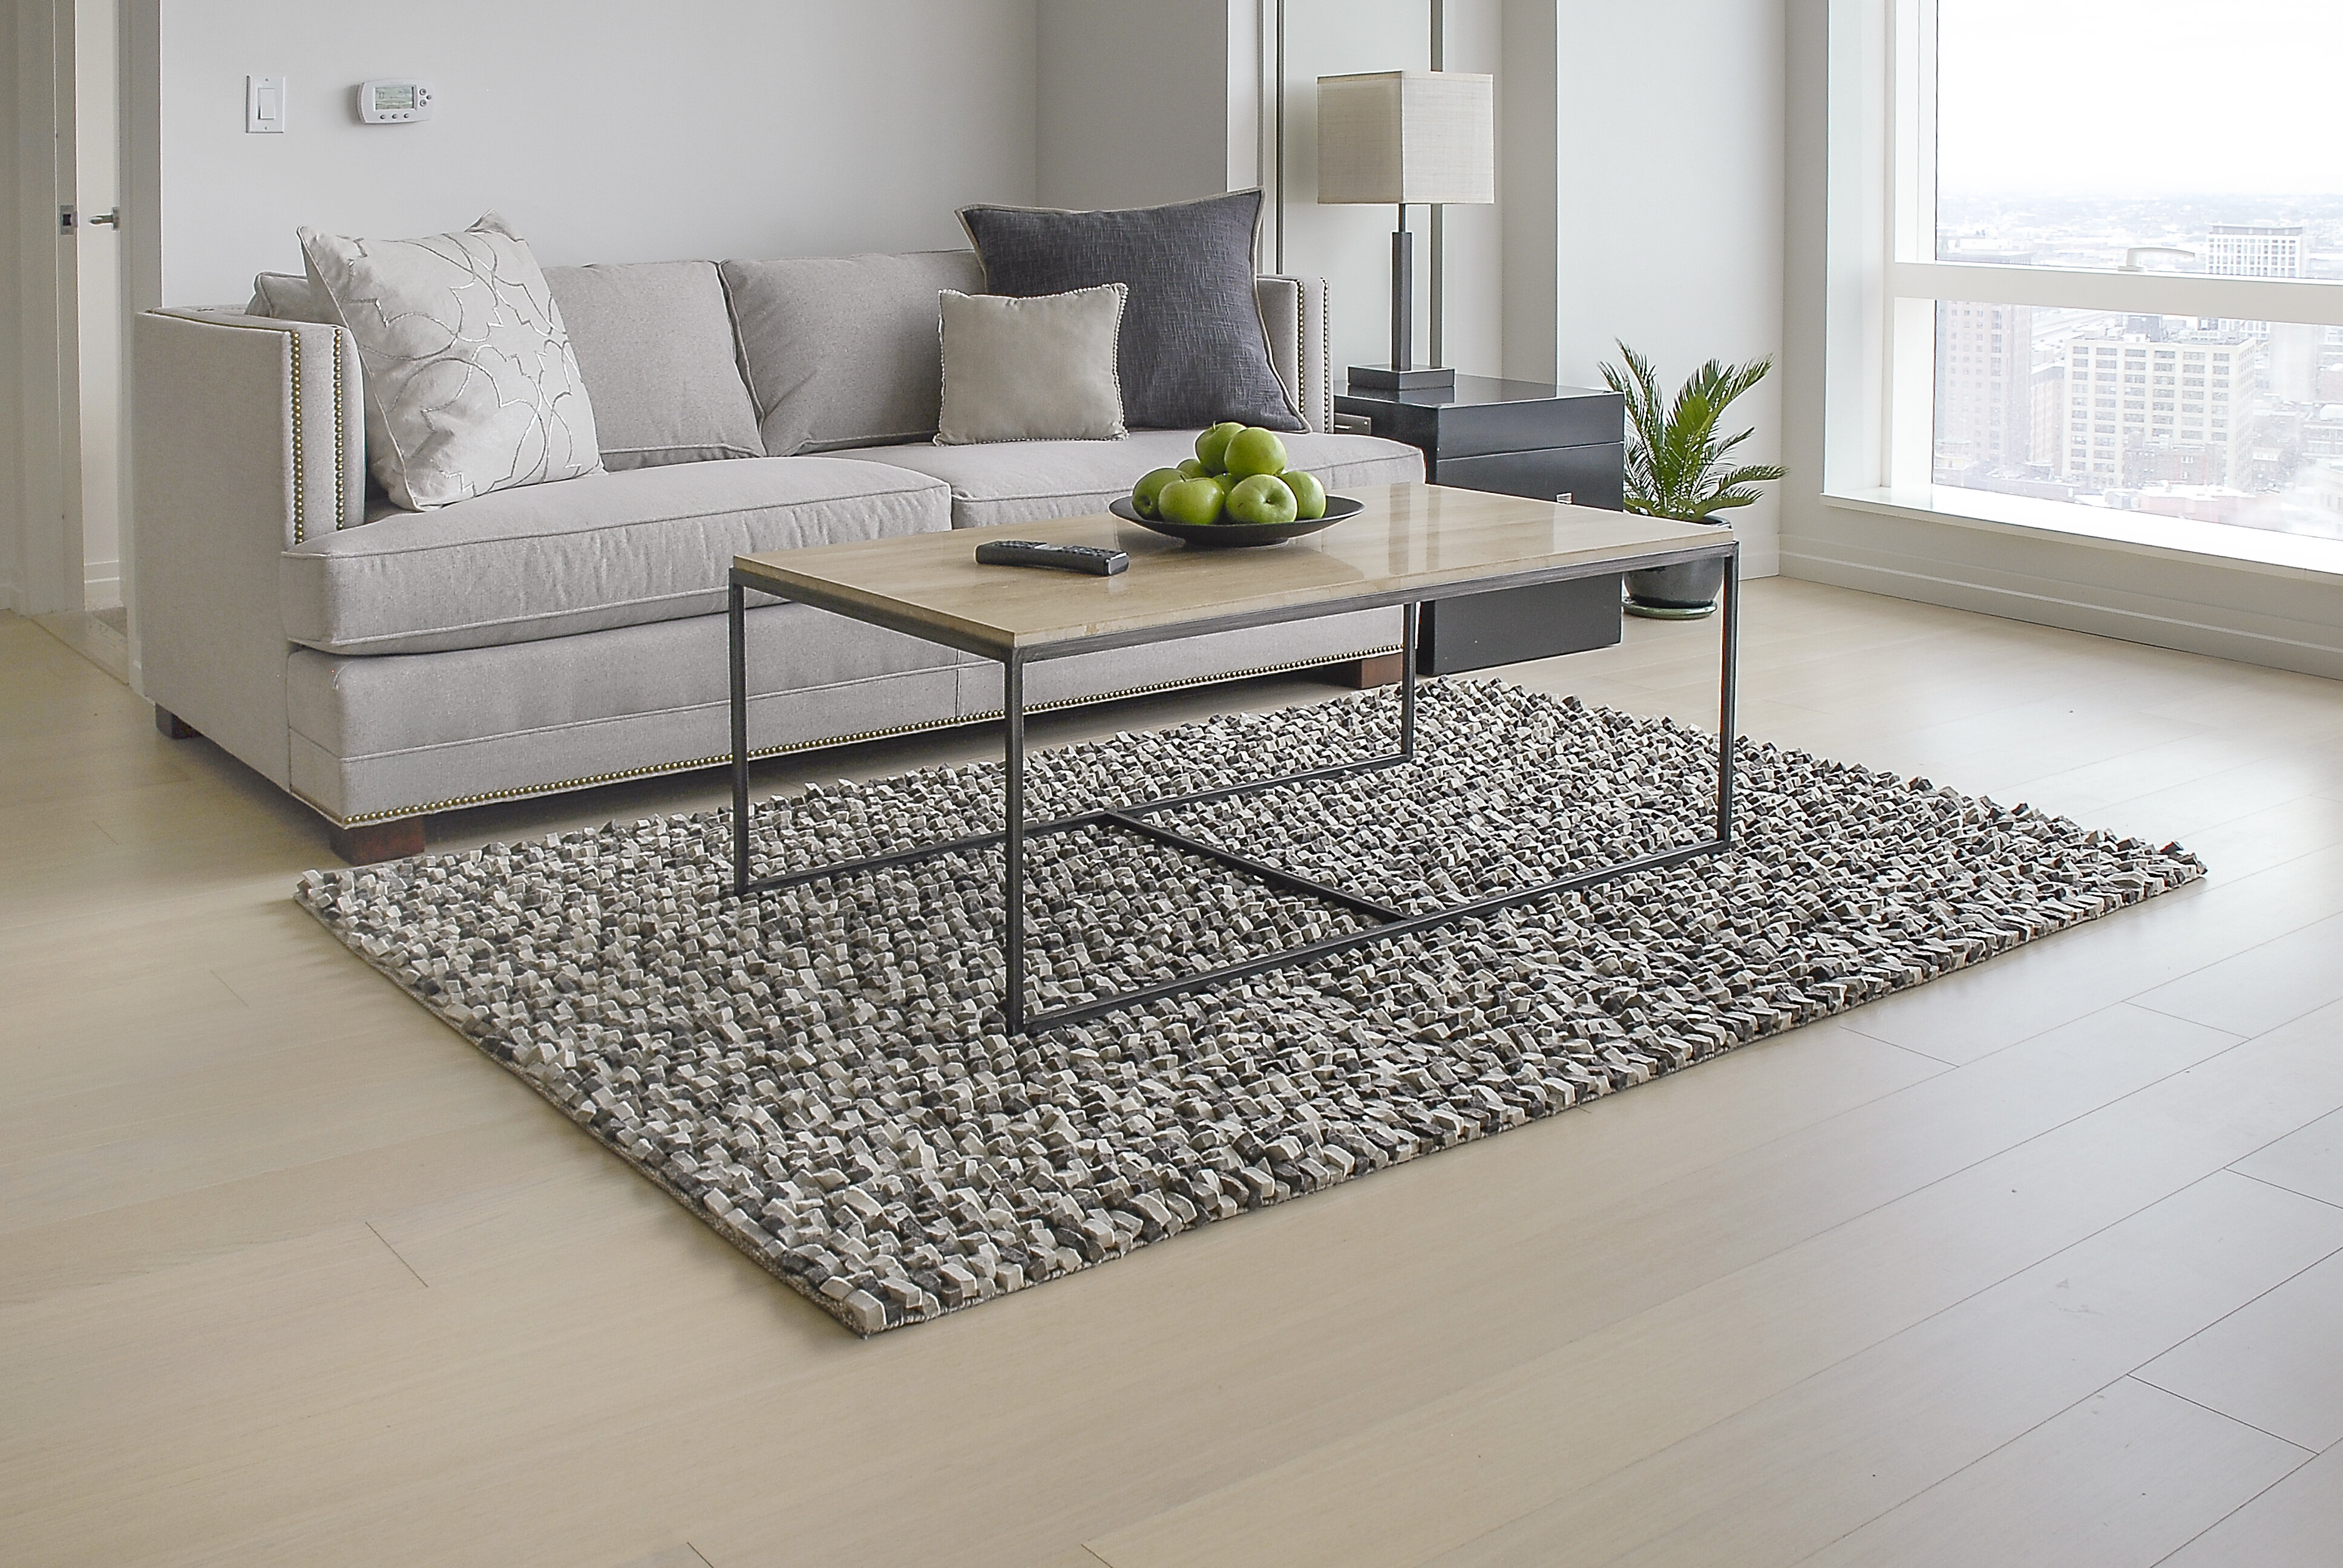 rug new ikea beautiful and white inspirational x of gray outdoor firstumcnewiberia